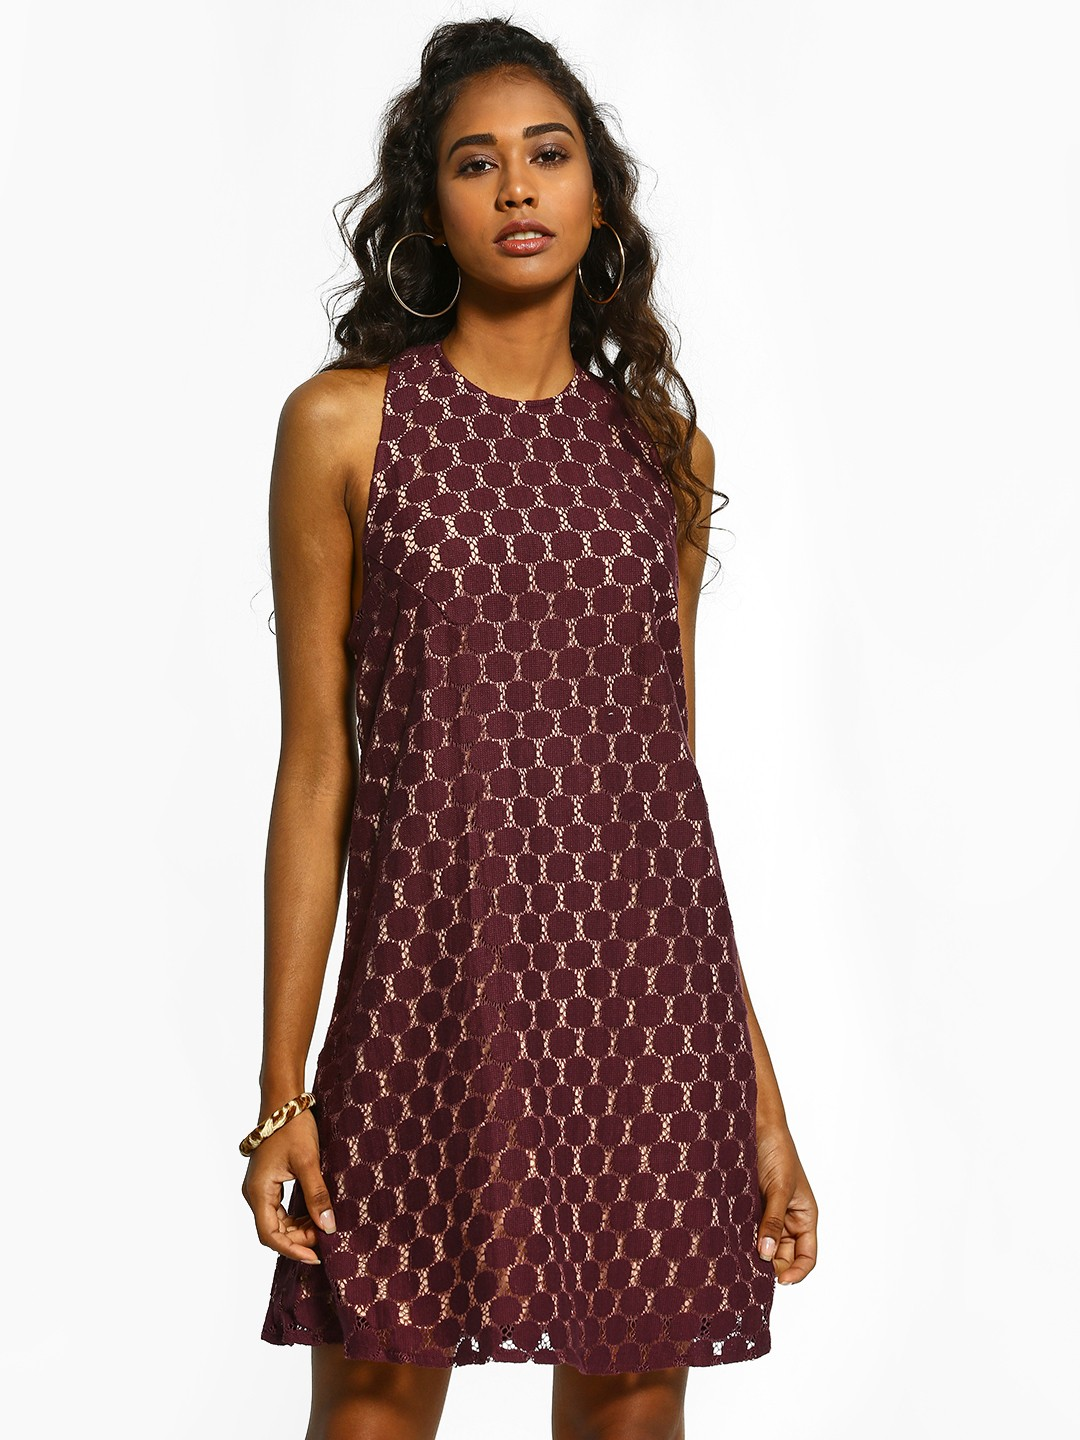 The Paperdoll Company Maroon T-Back Lace Skater Dress 1